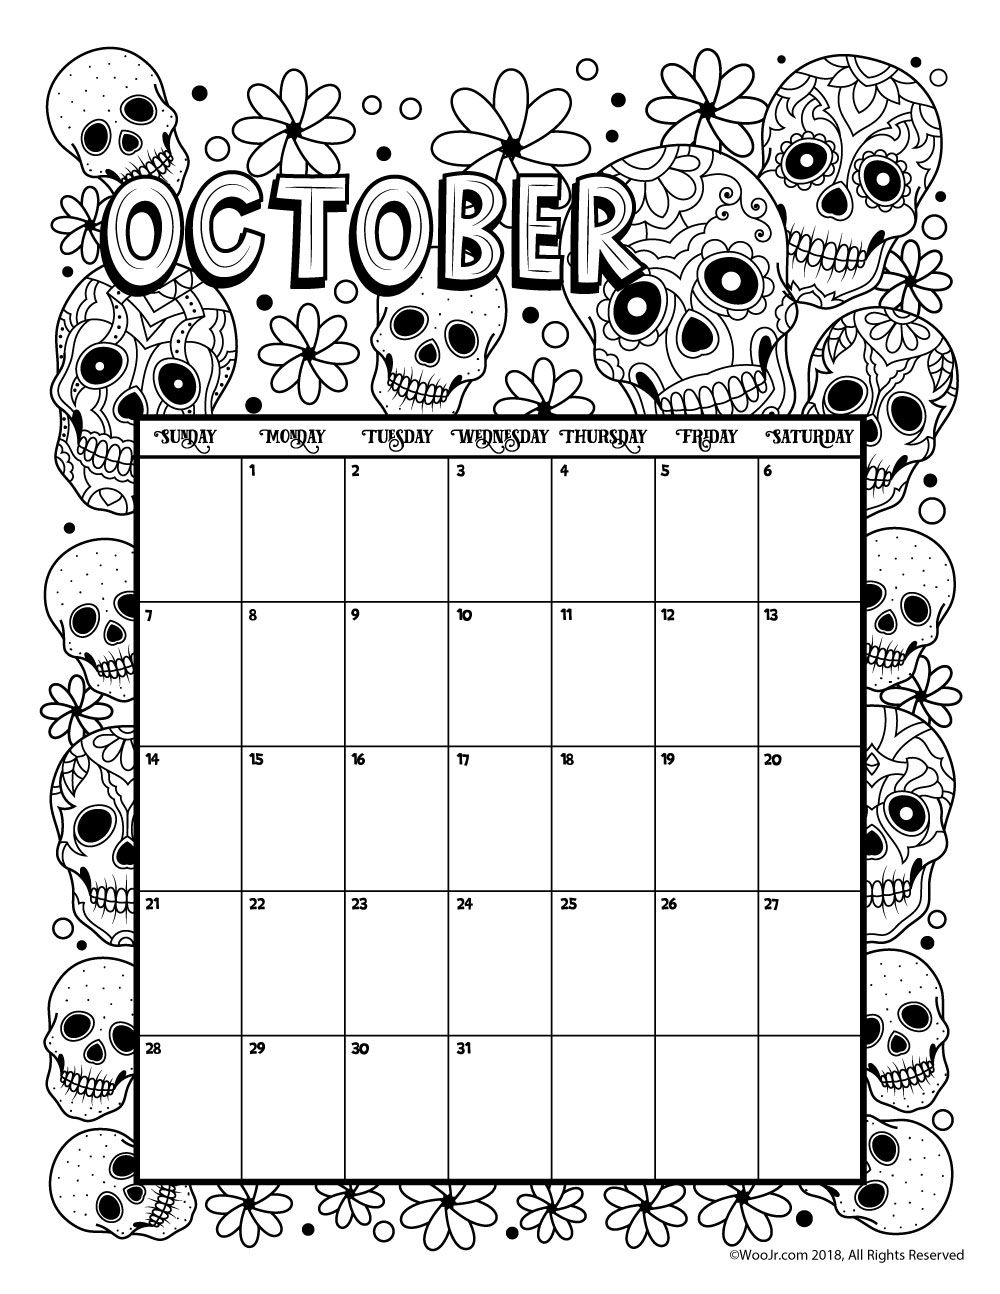 Calendar Drawing For Kids : October coloring calendar page Сделай сам